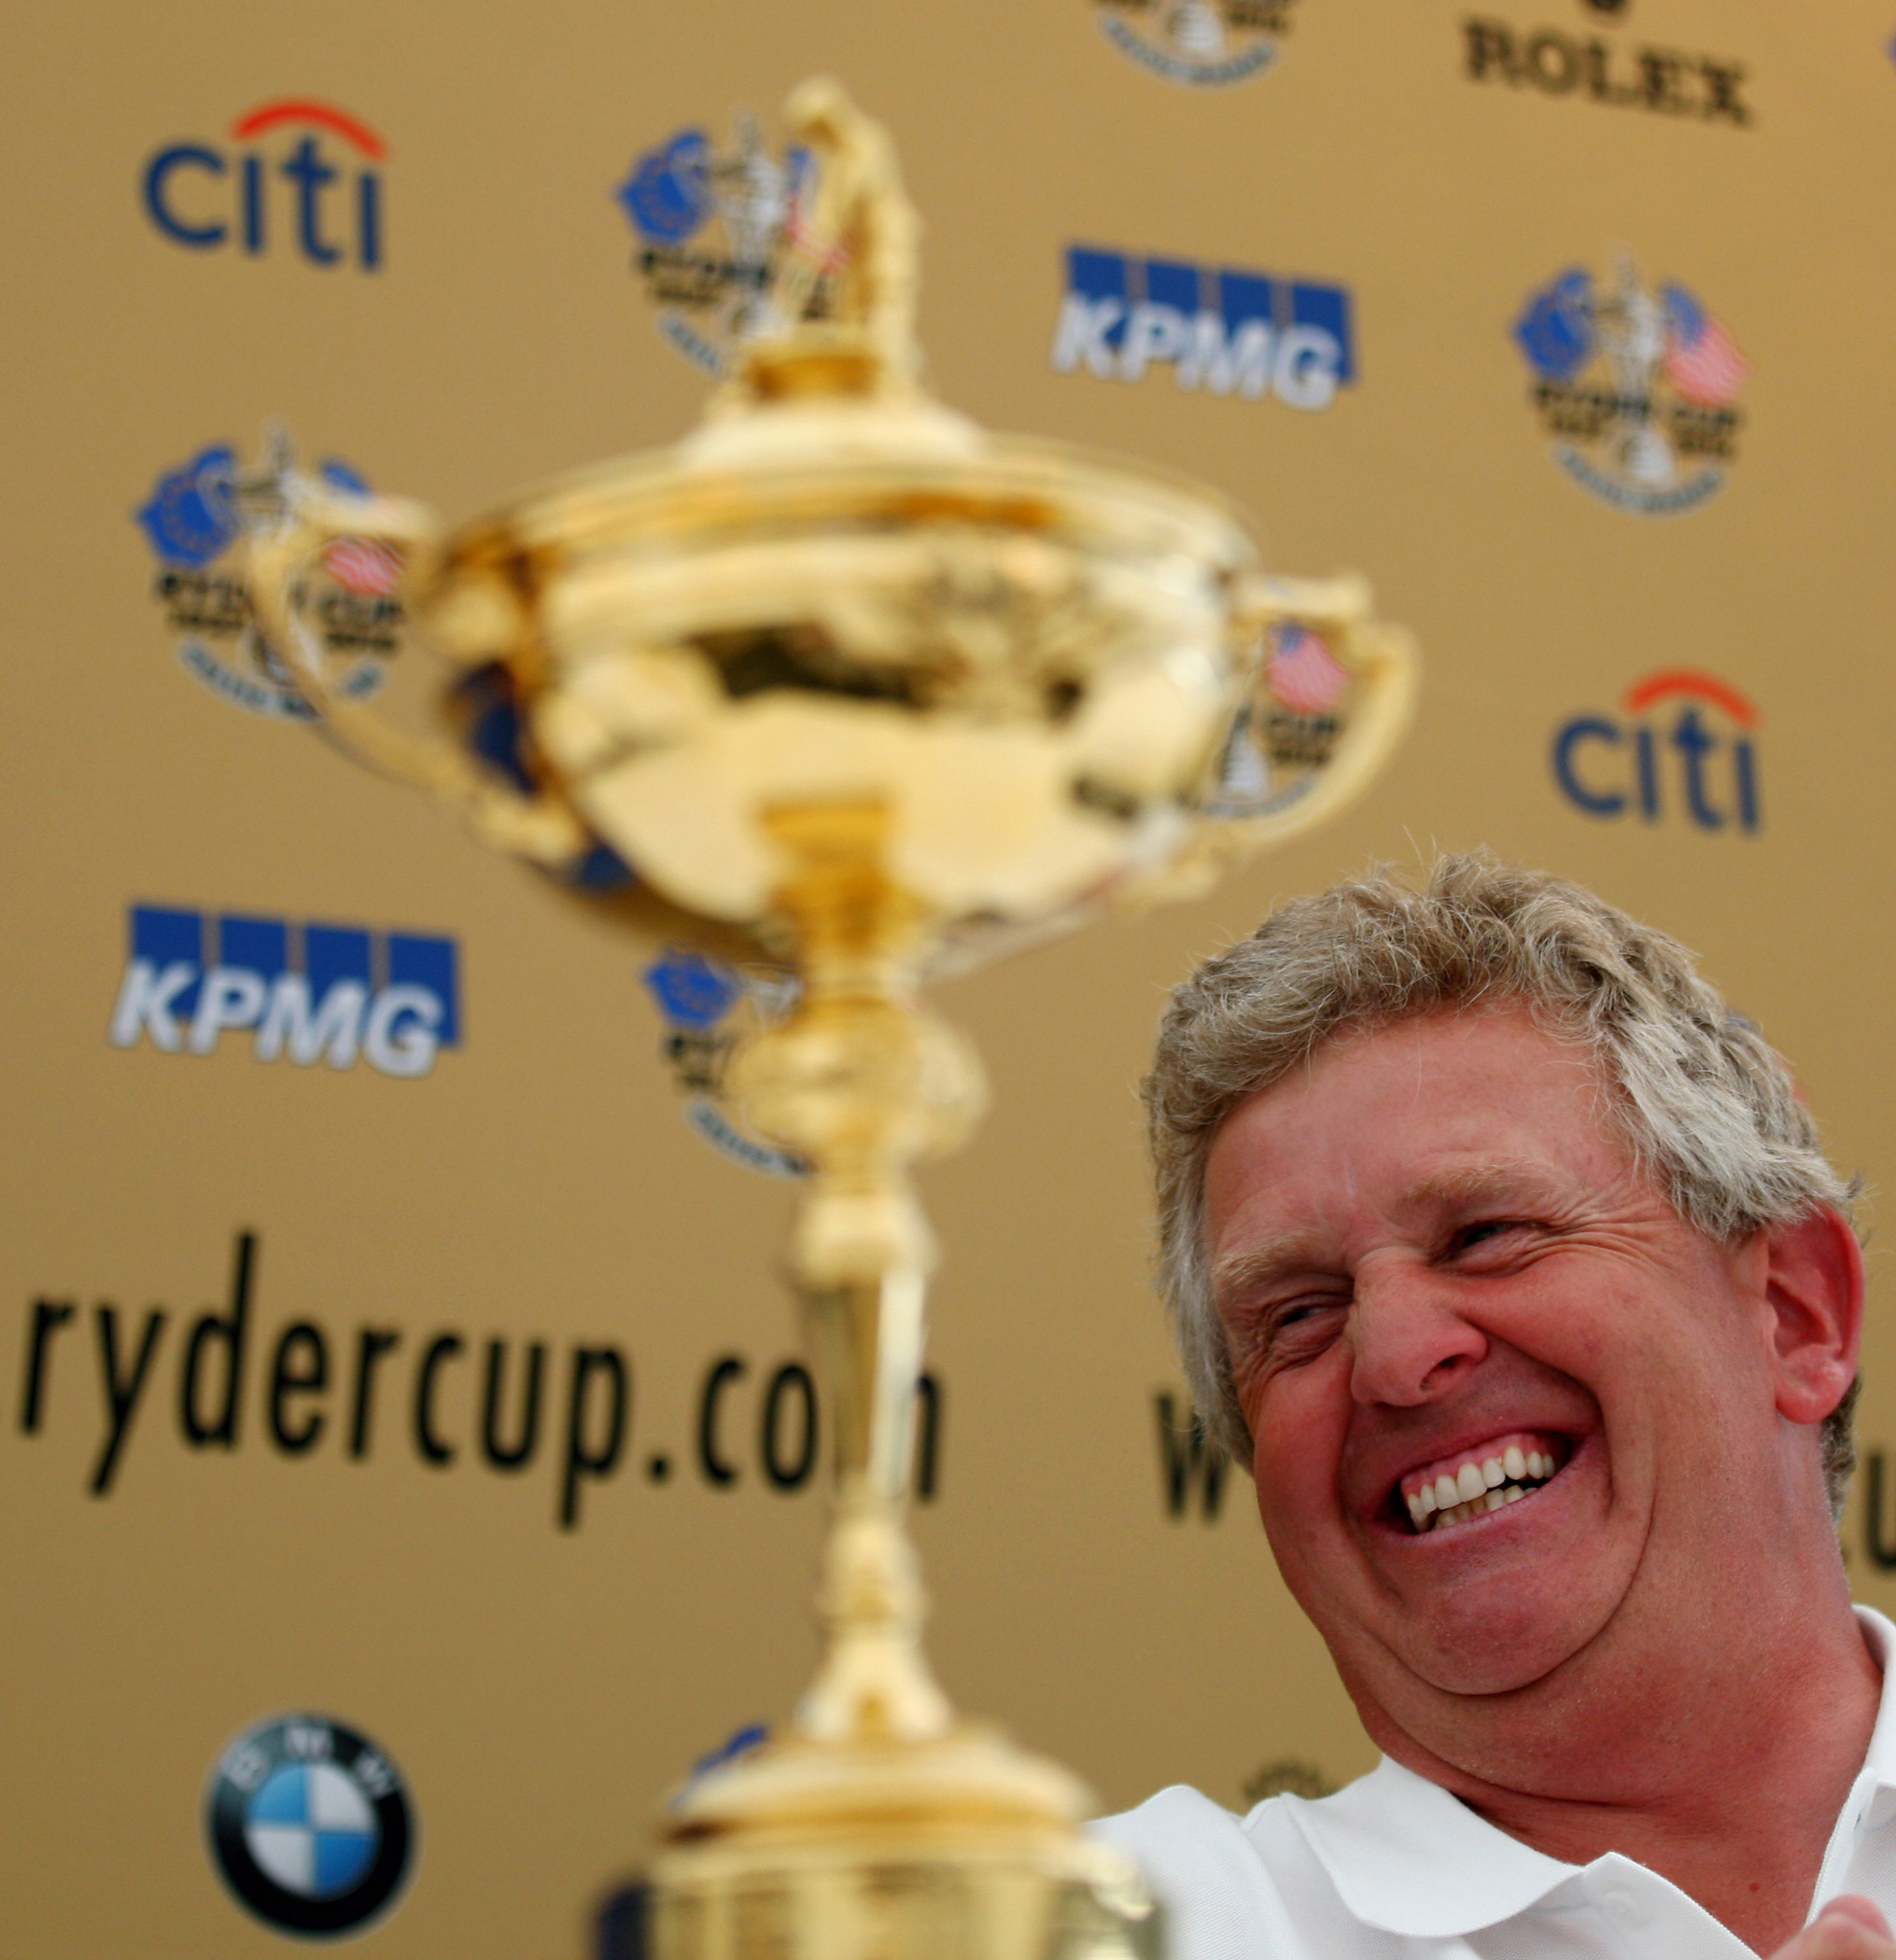 European Ryder Cup captain Colin Montgomerie at a June press conference for the 2010 Ryder Cup.